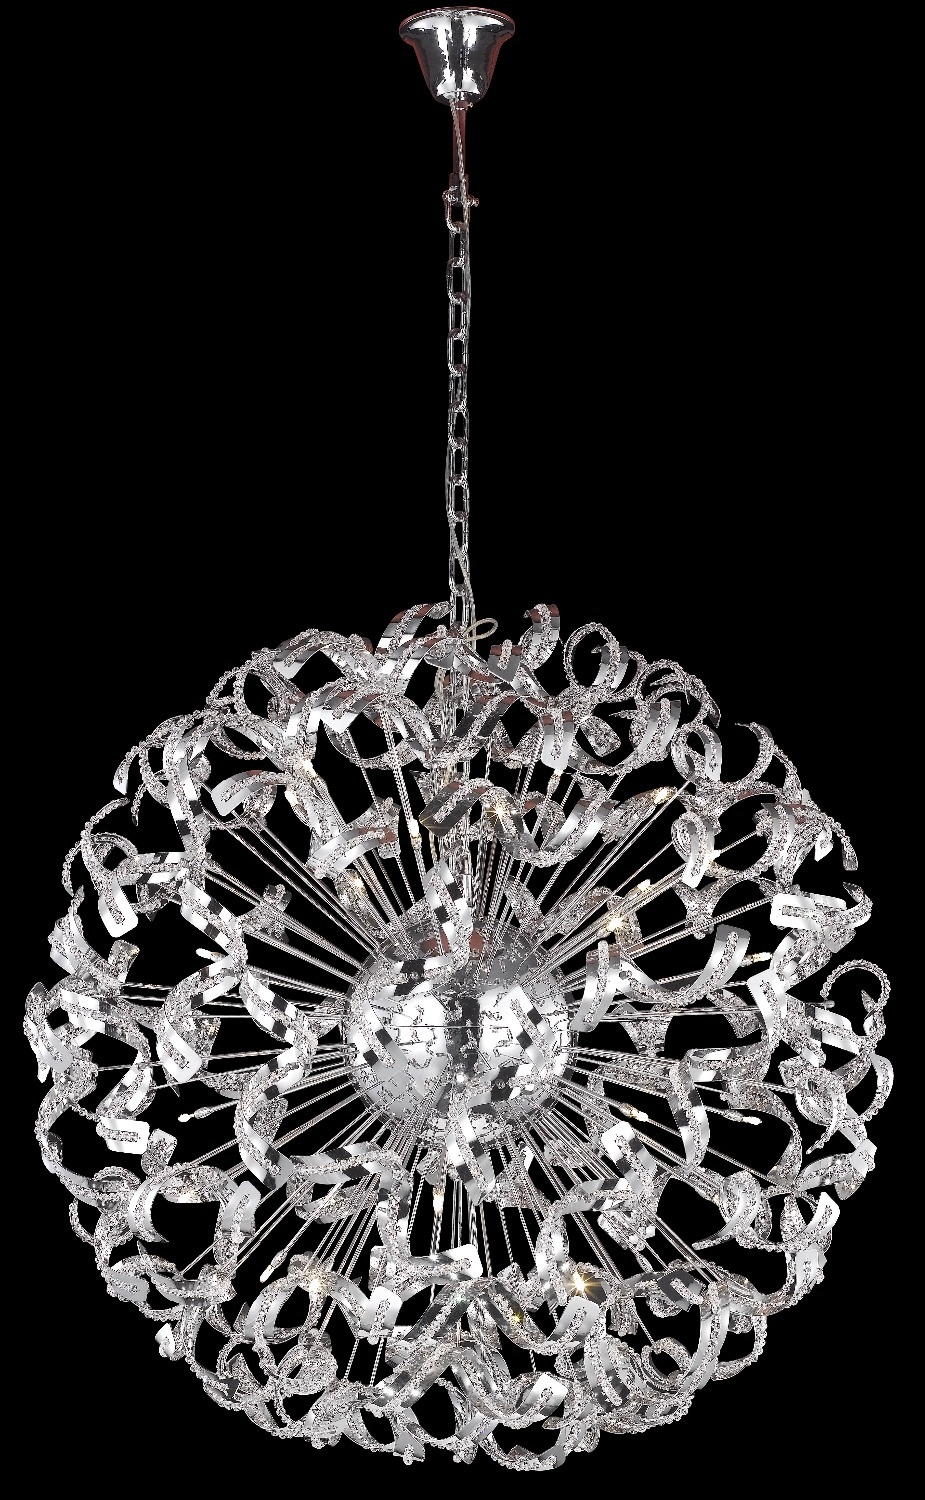 Free Shipping New Modern Spiral Design Chandelier Crystal Lights Pertaining To Chrome And Crystal Chandeliers (View 15 of 25)